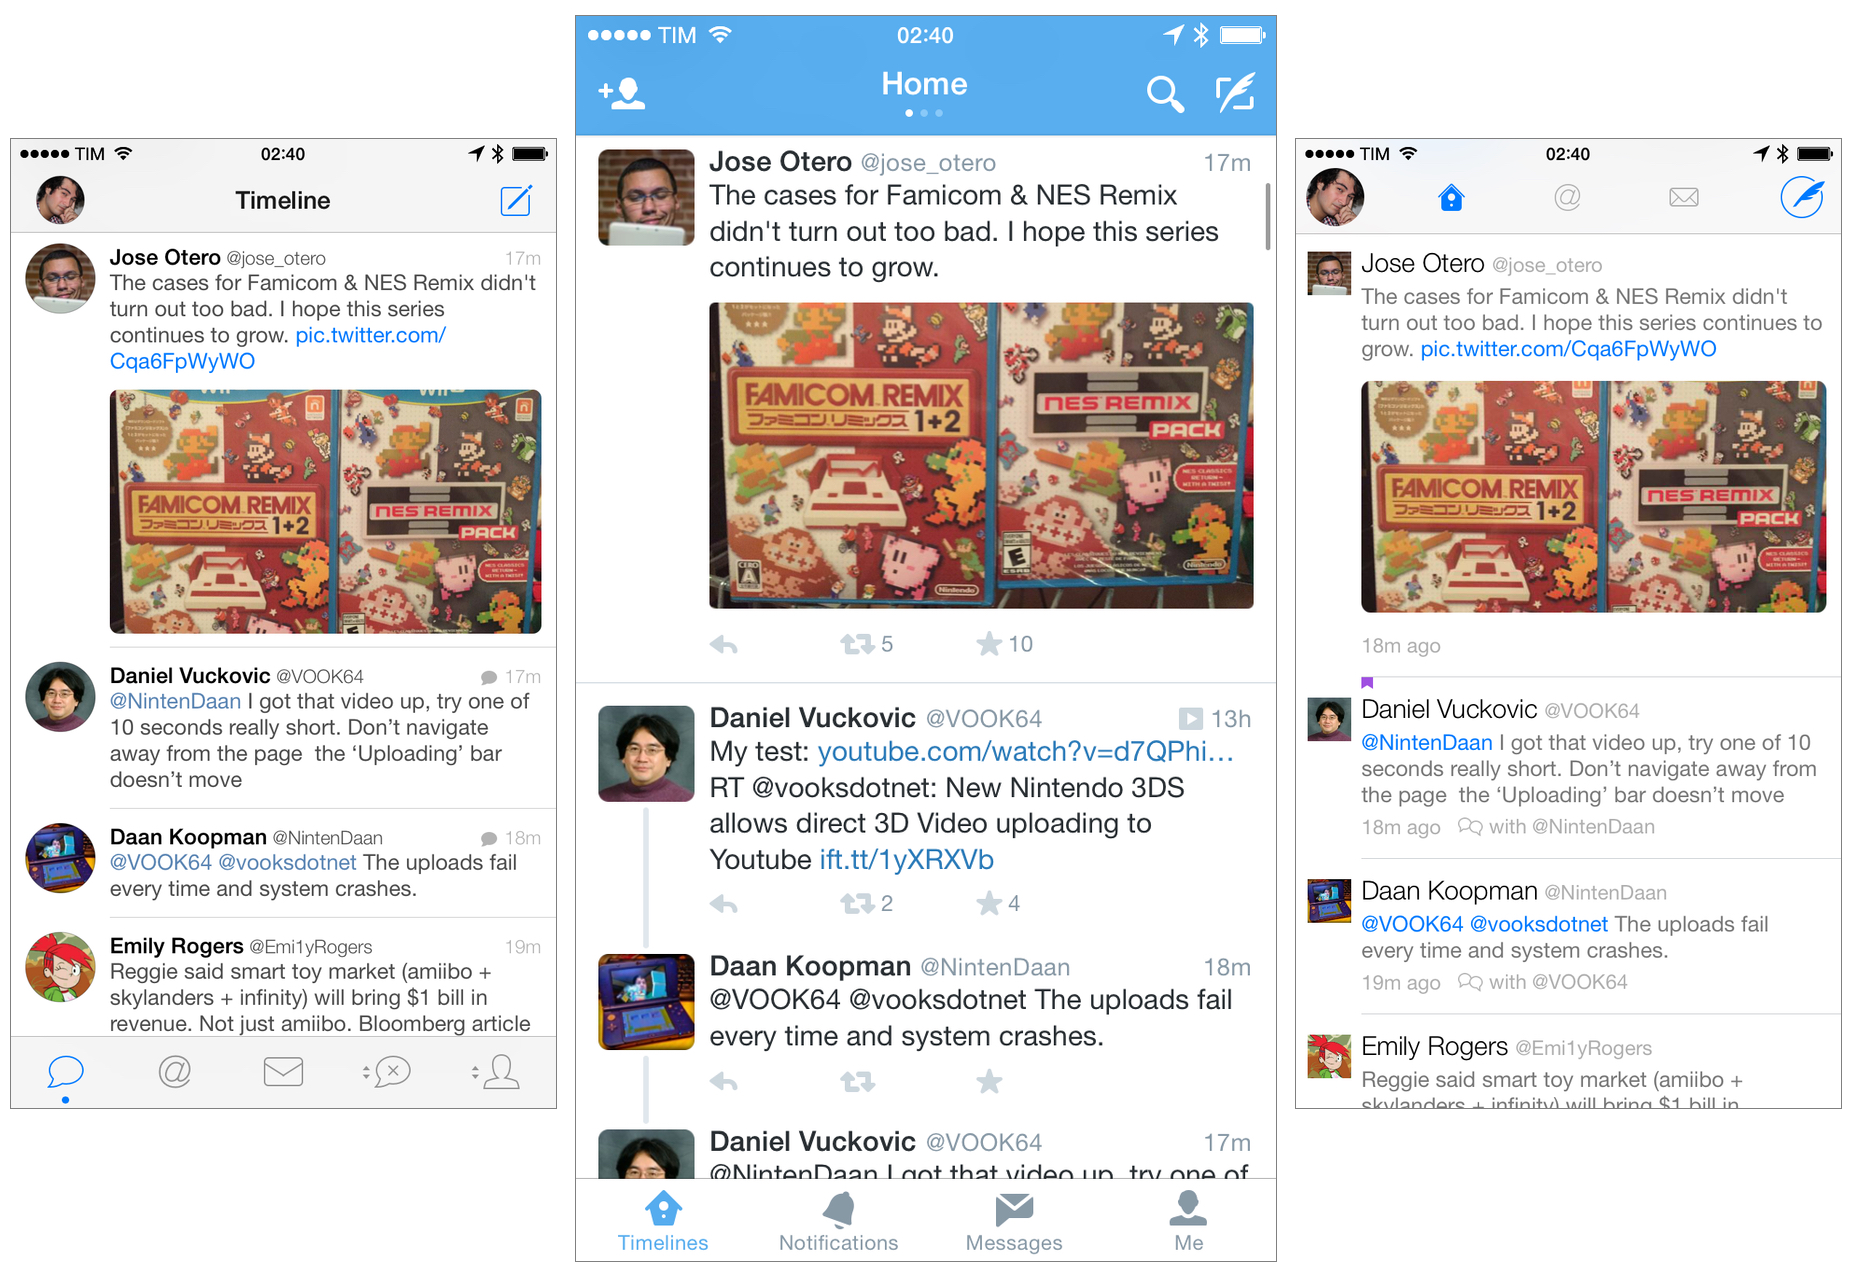 Twitter Clients in 2014: An Exploration of Tweetbot